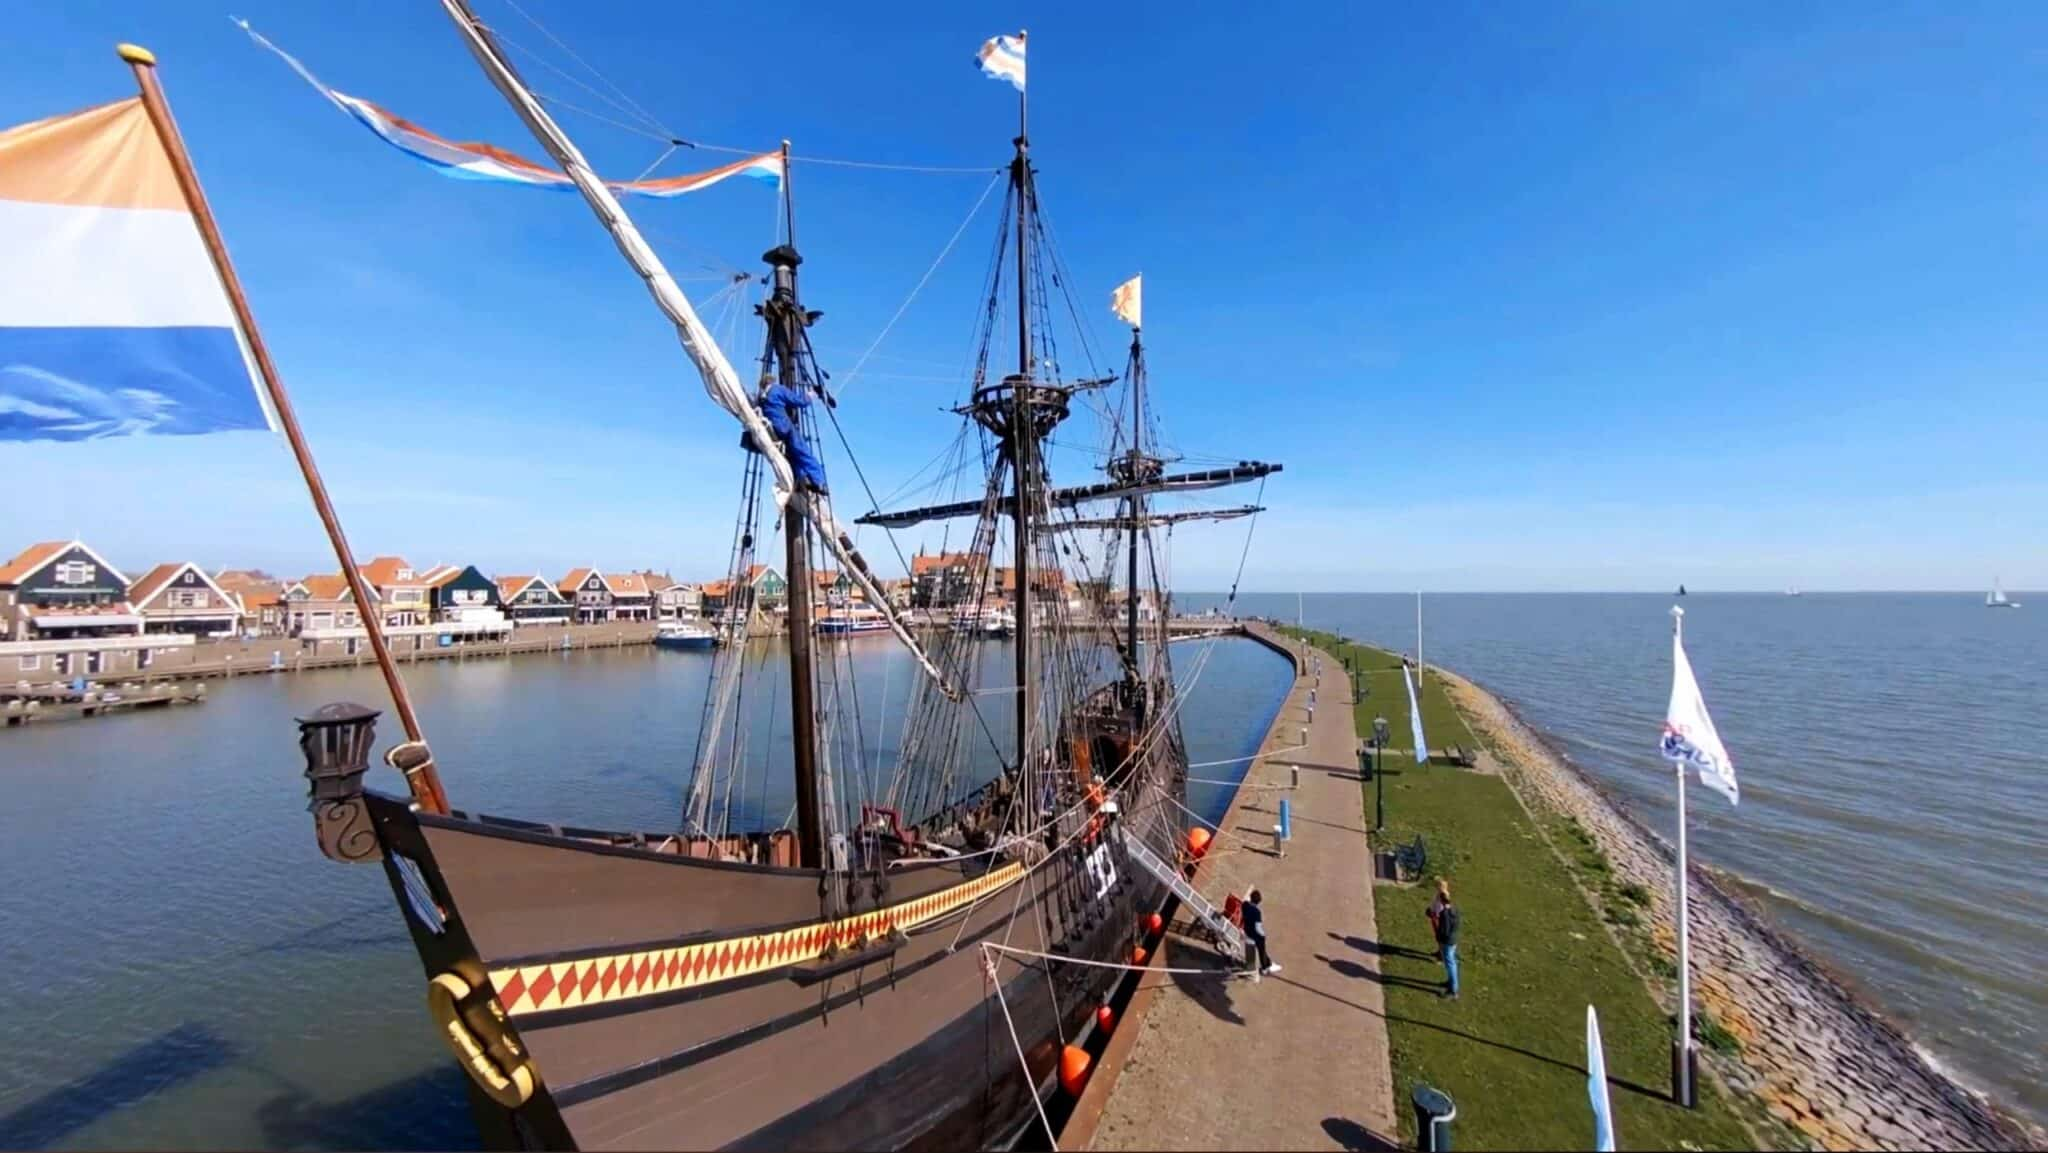 Dutch tourist town Volendam by drone